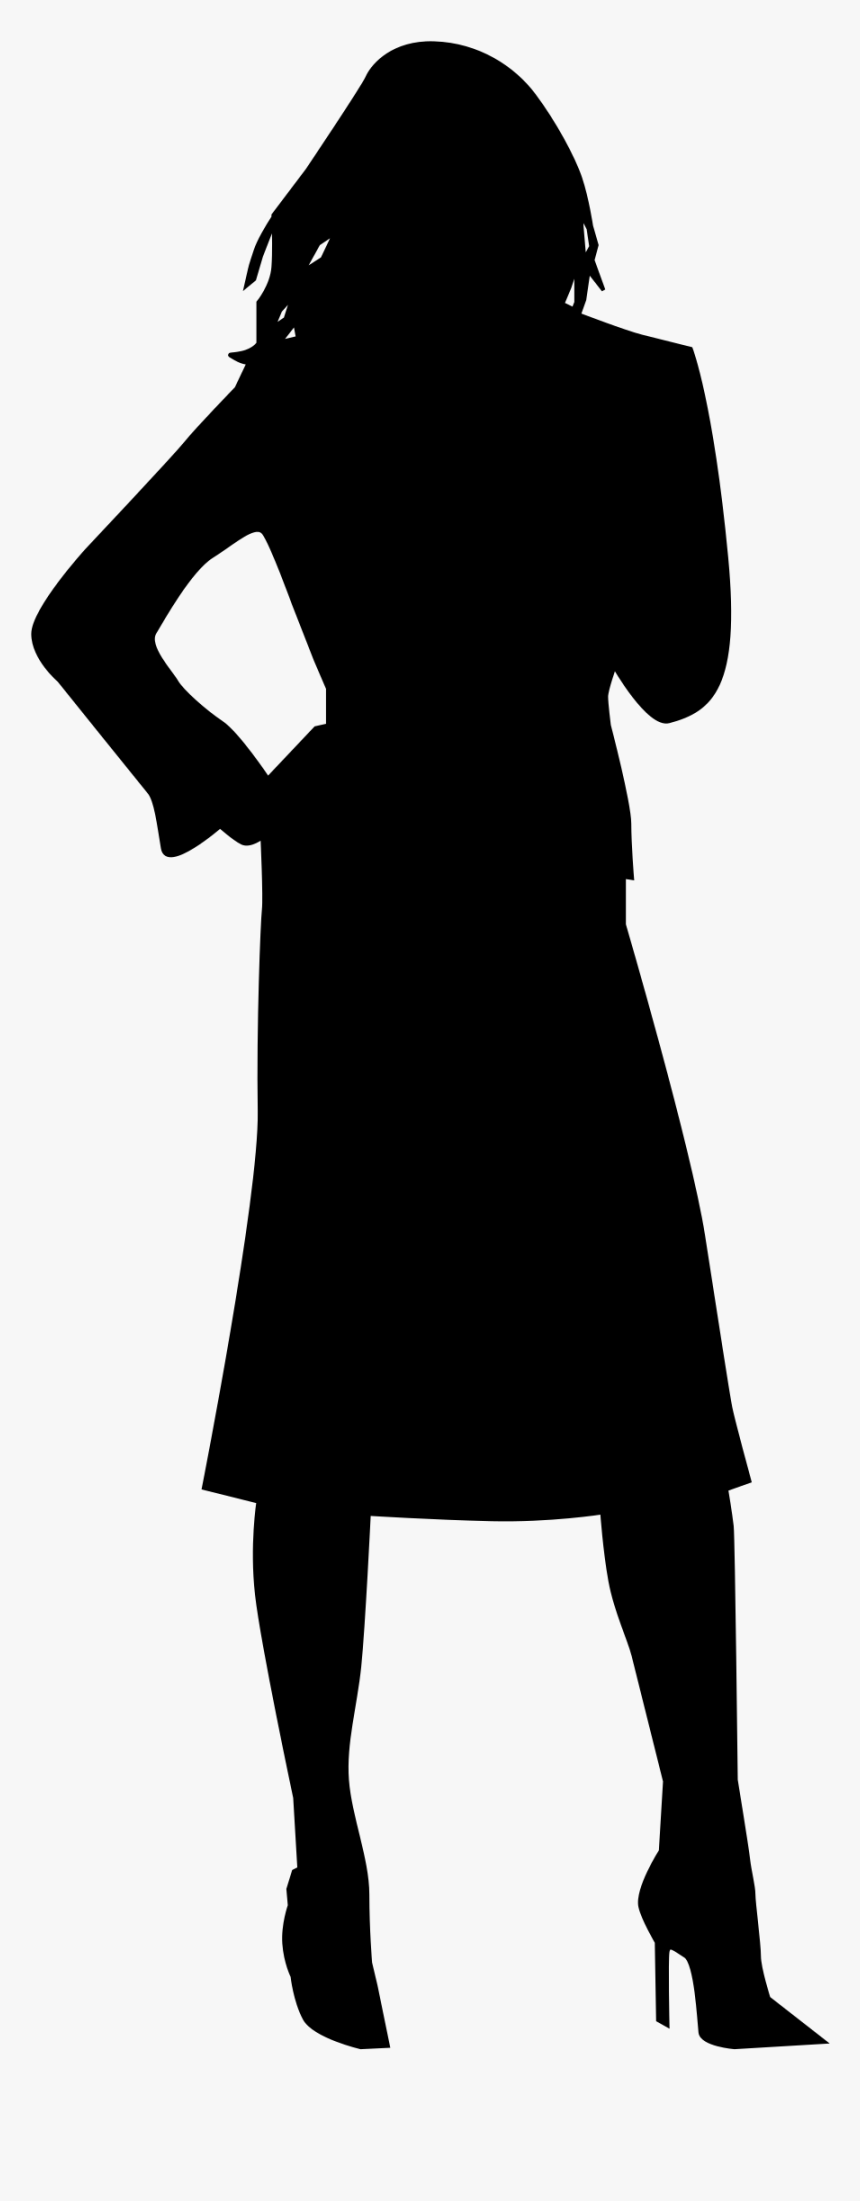 Woman Silhouette Png Images Pictures - Woman Silhouette Icon Png, Transparent Png, Free Download